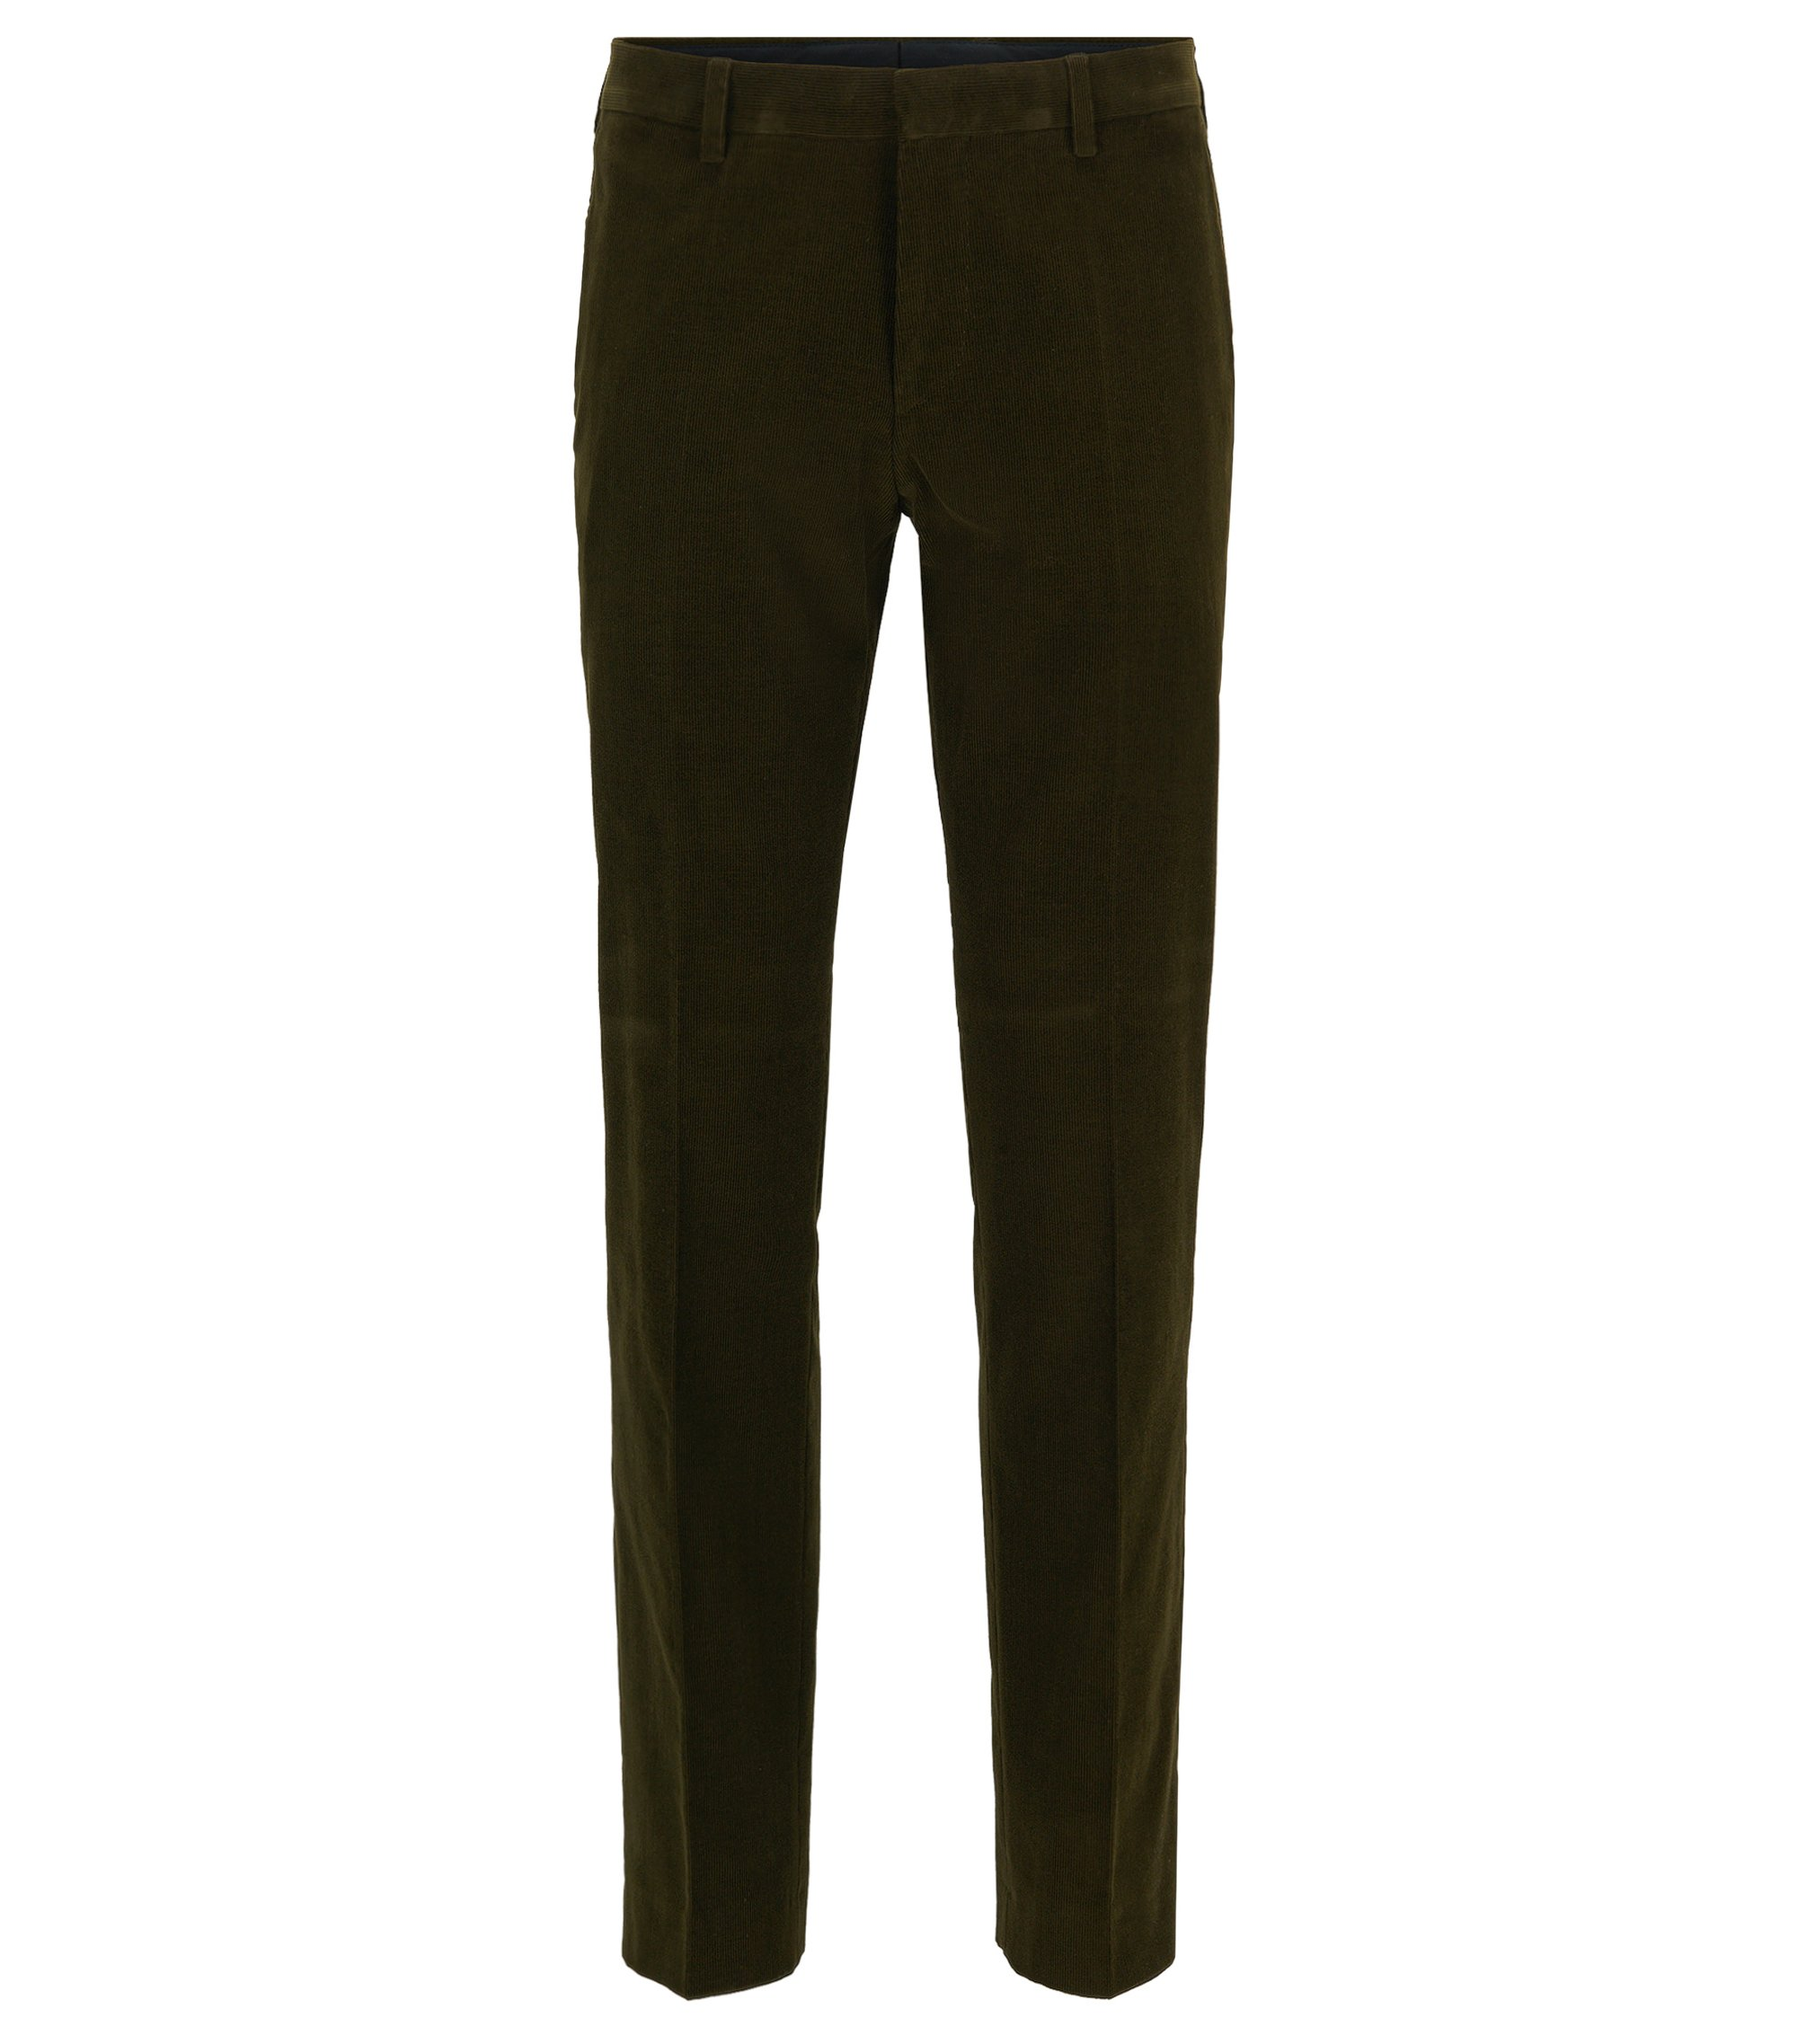 Pantalon Slim Fit en velours de coton stretch, Chaux